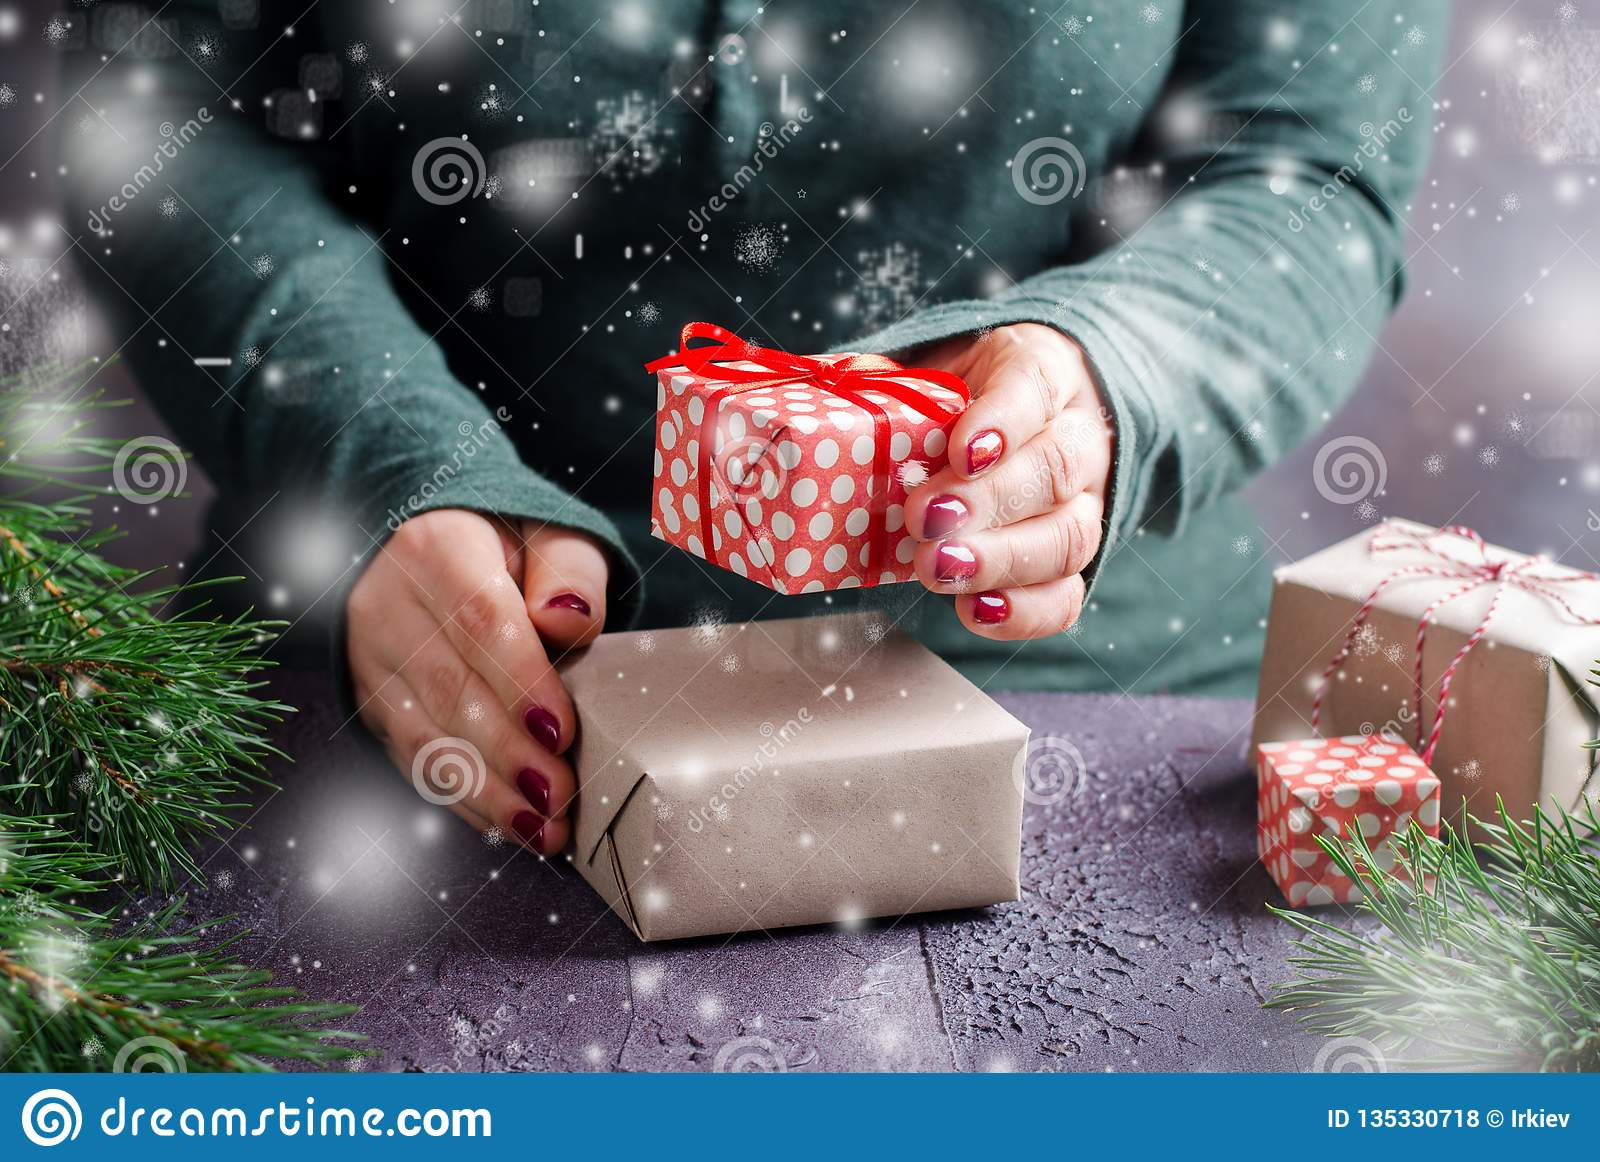 Female Hands Wrapping And Present Christmas Gifts On Dark Background